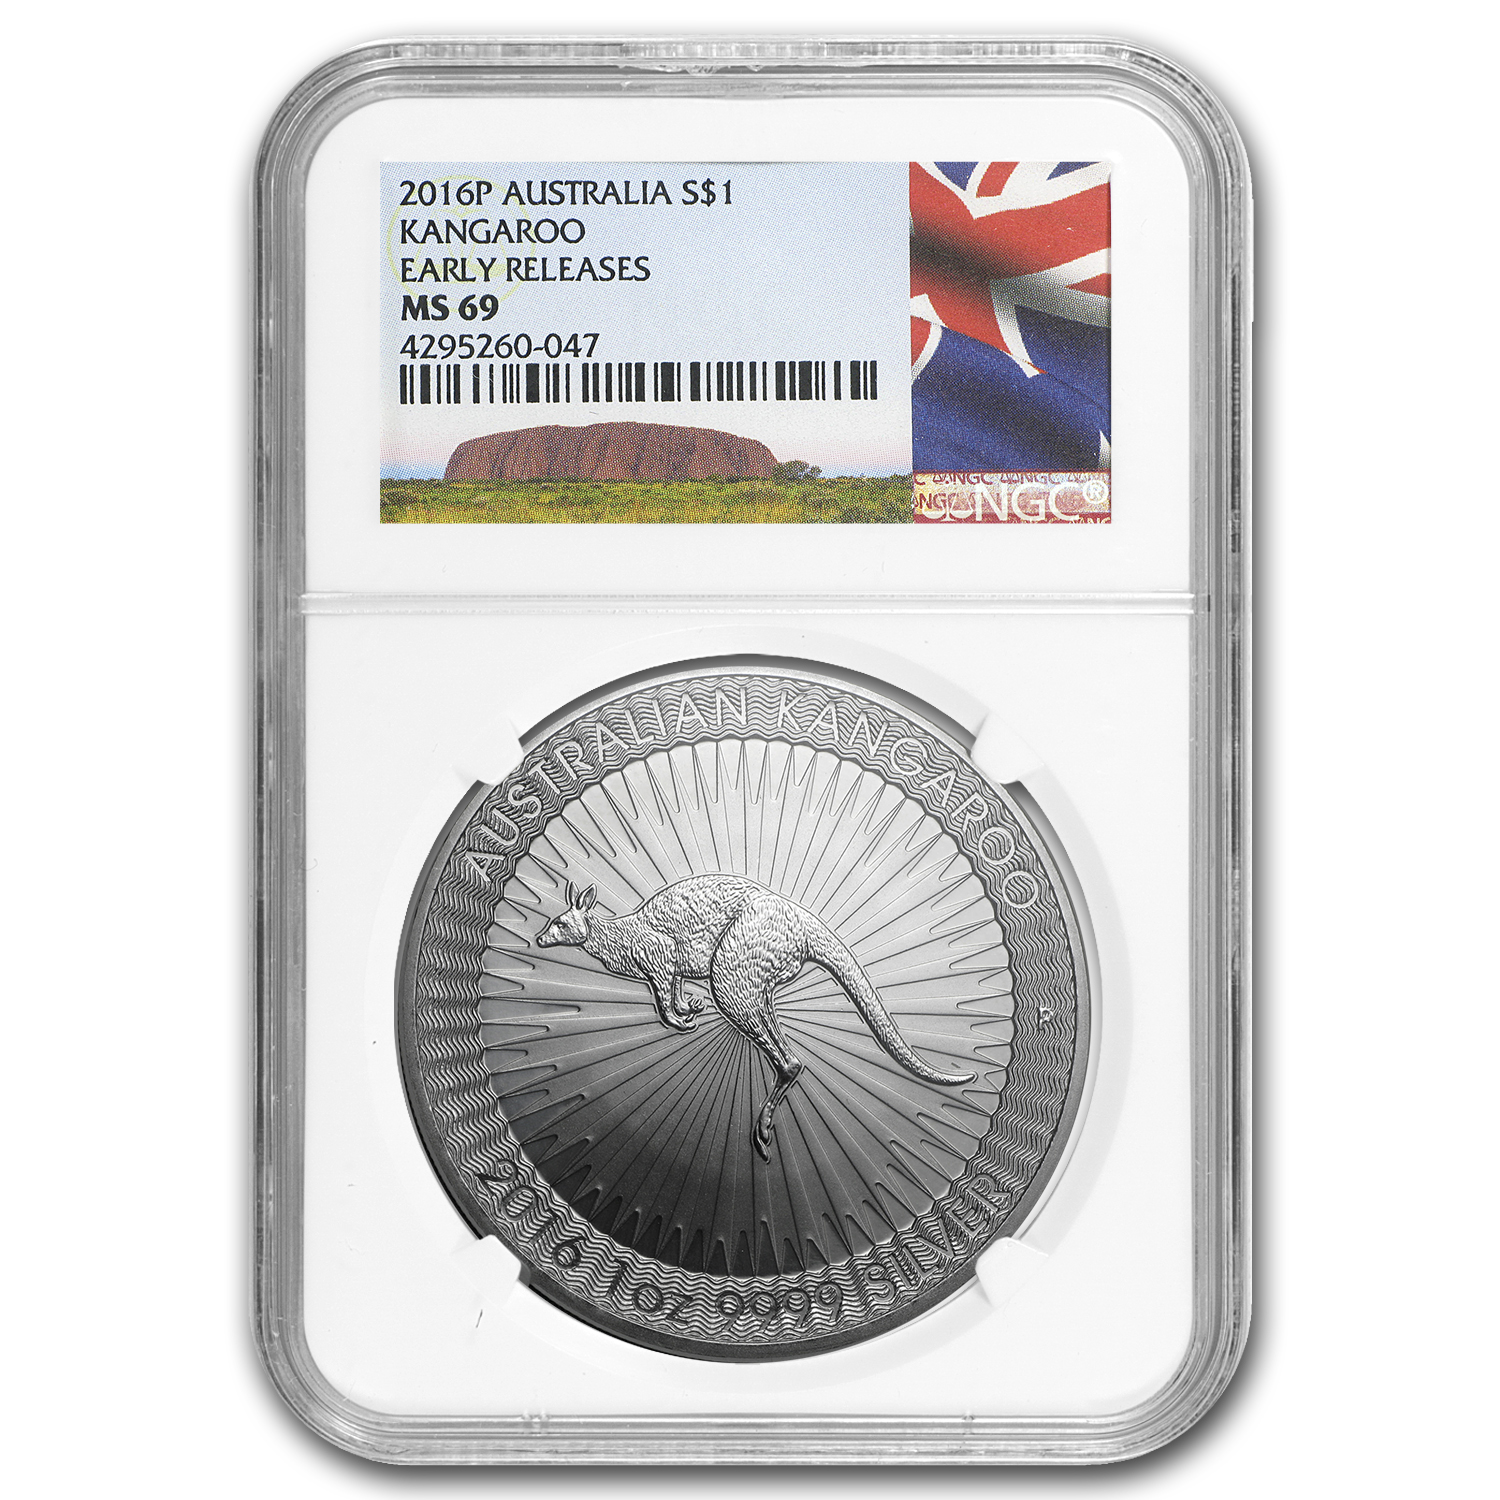 2016 Australia 1 oz Silver Kangaroo MS-69 NGC (Early Release)